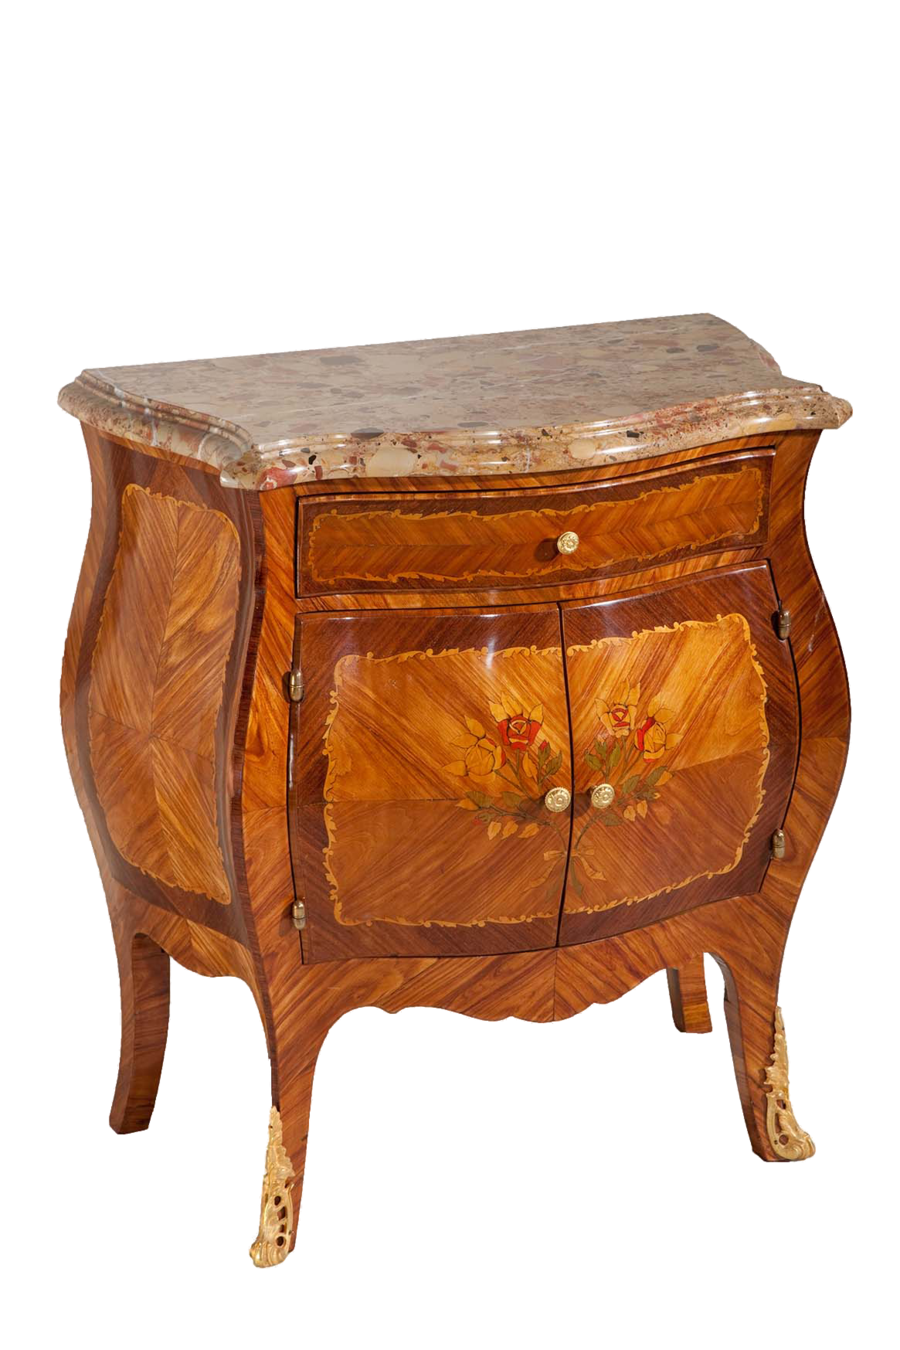 Antique png transparent images. Clipart table old table